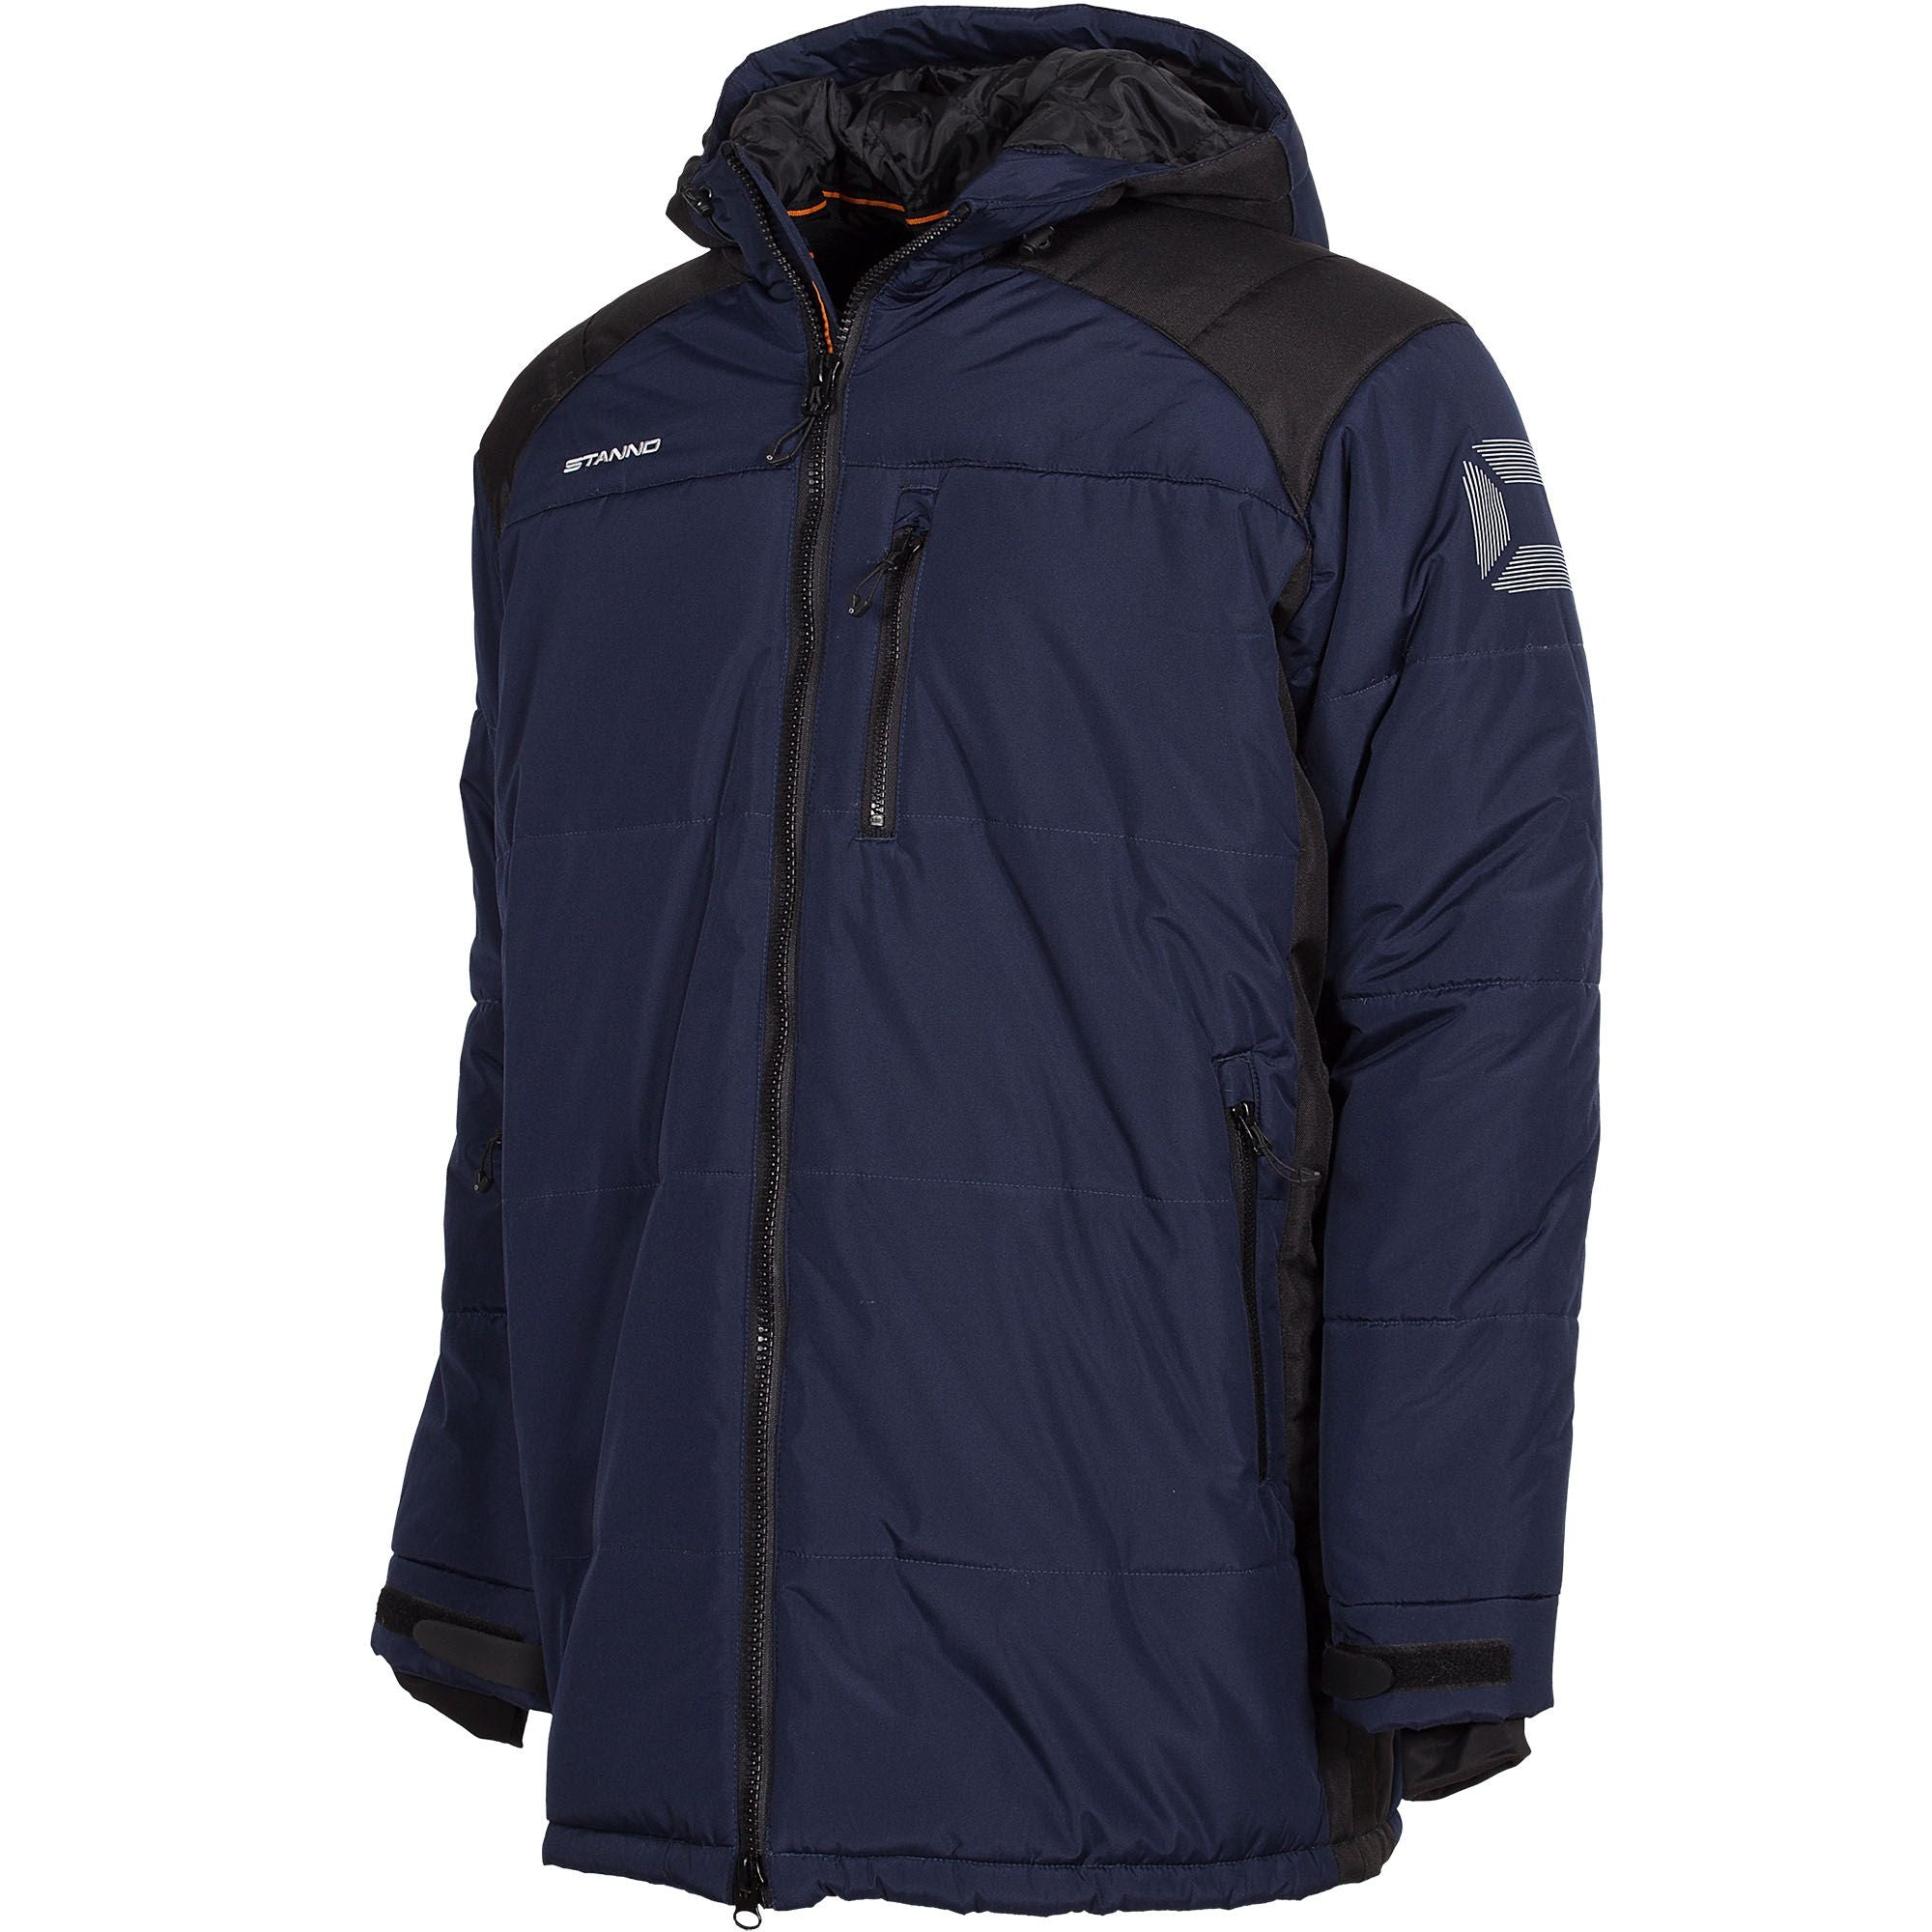 Stanno Centro Padded Coach Jacket - Navy/Black